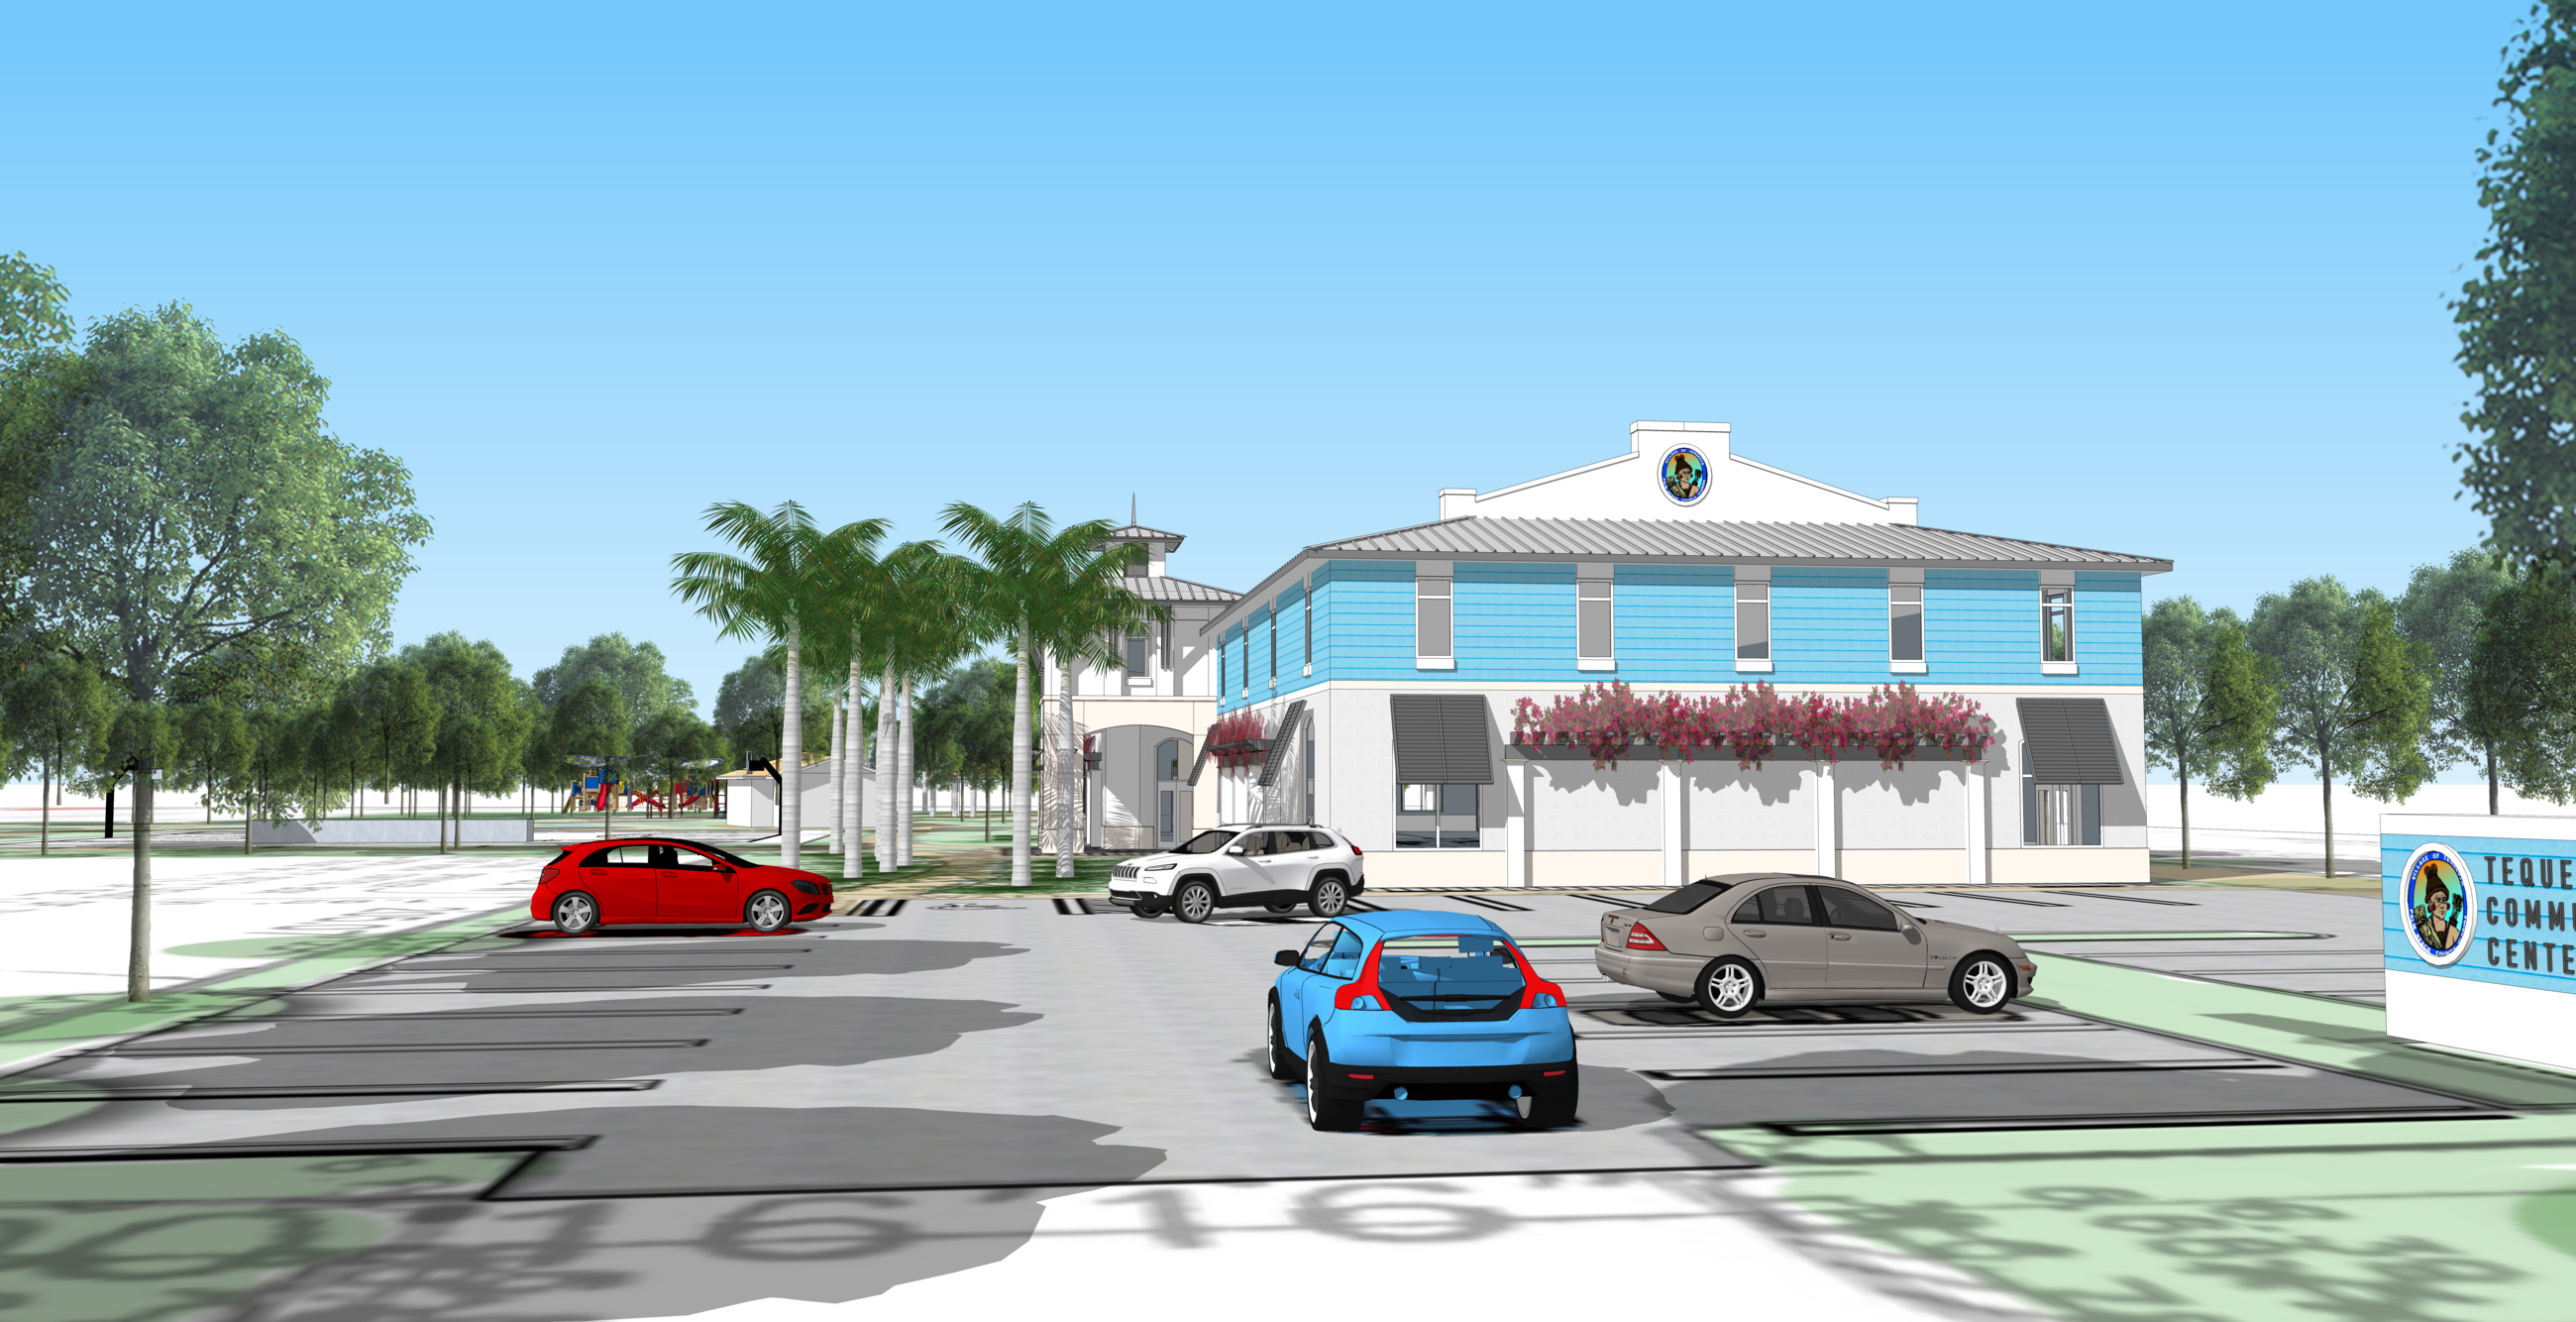 Street View of Proposed Recreation/Community Center